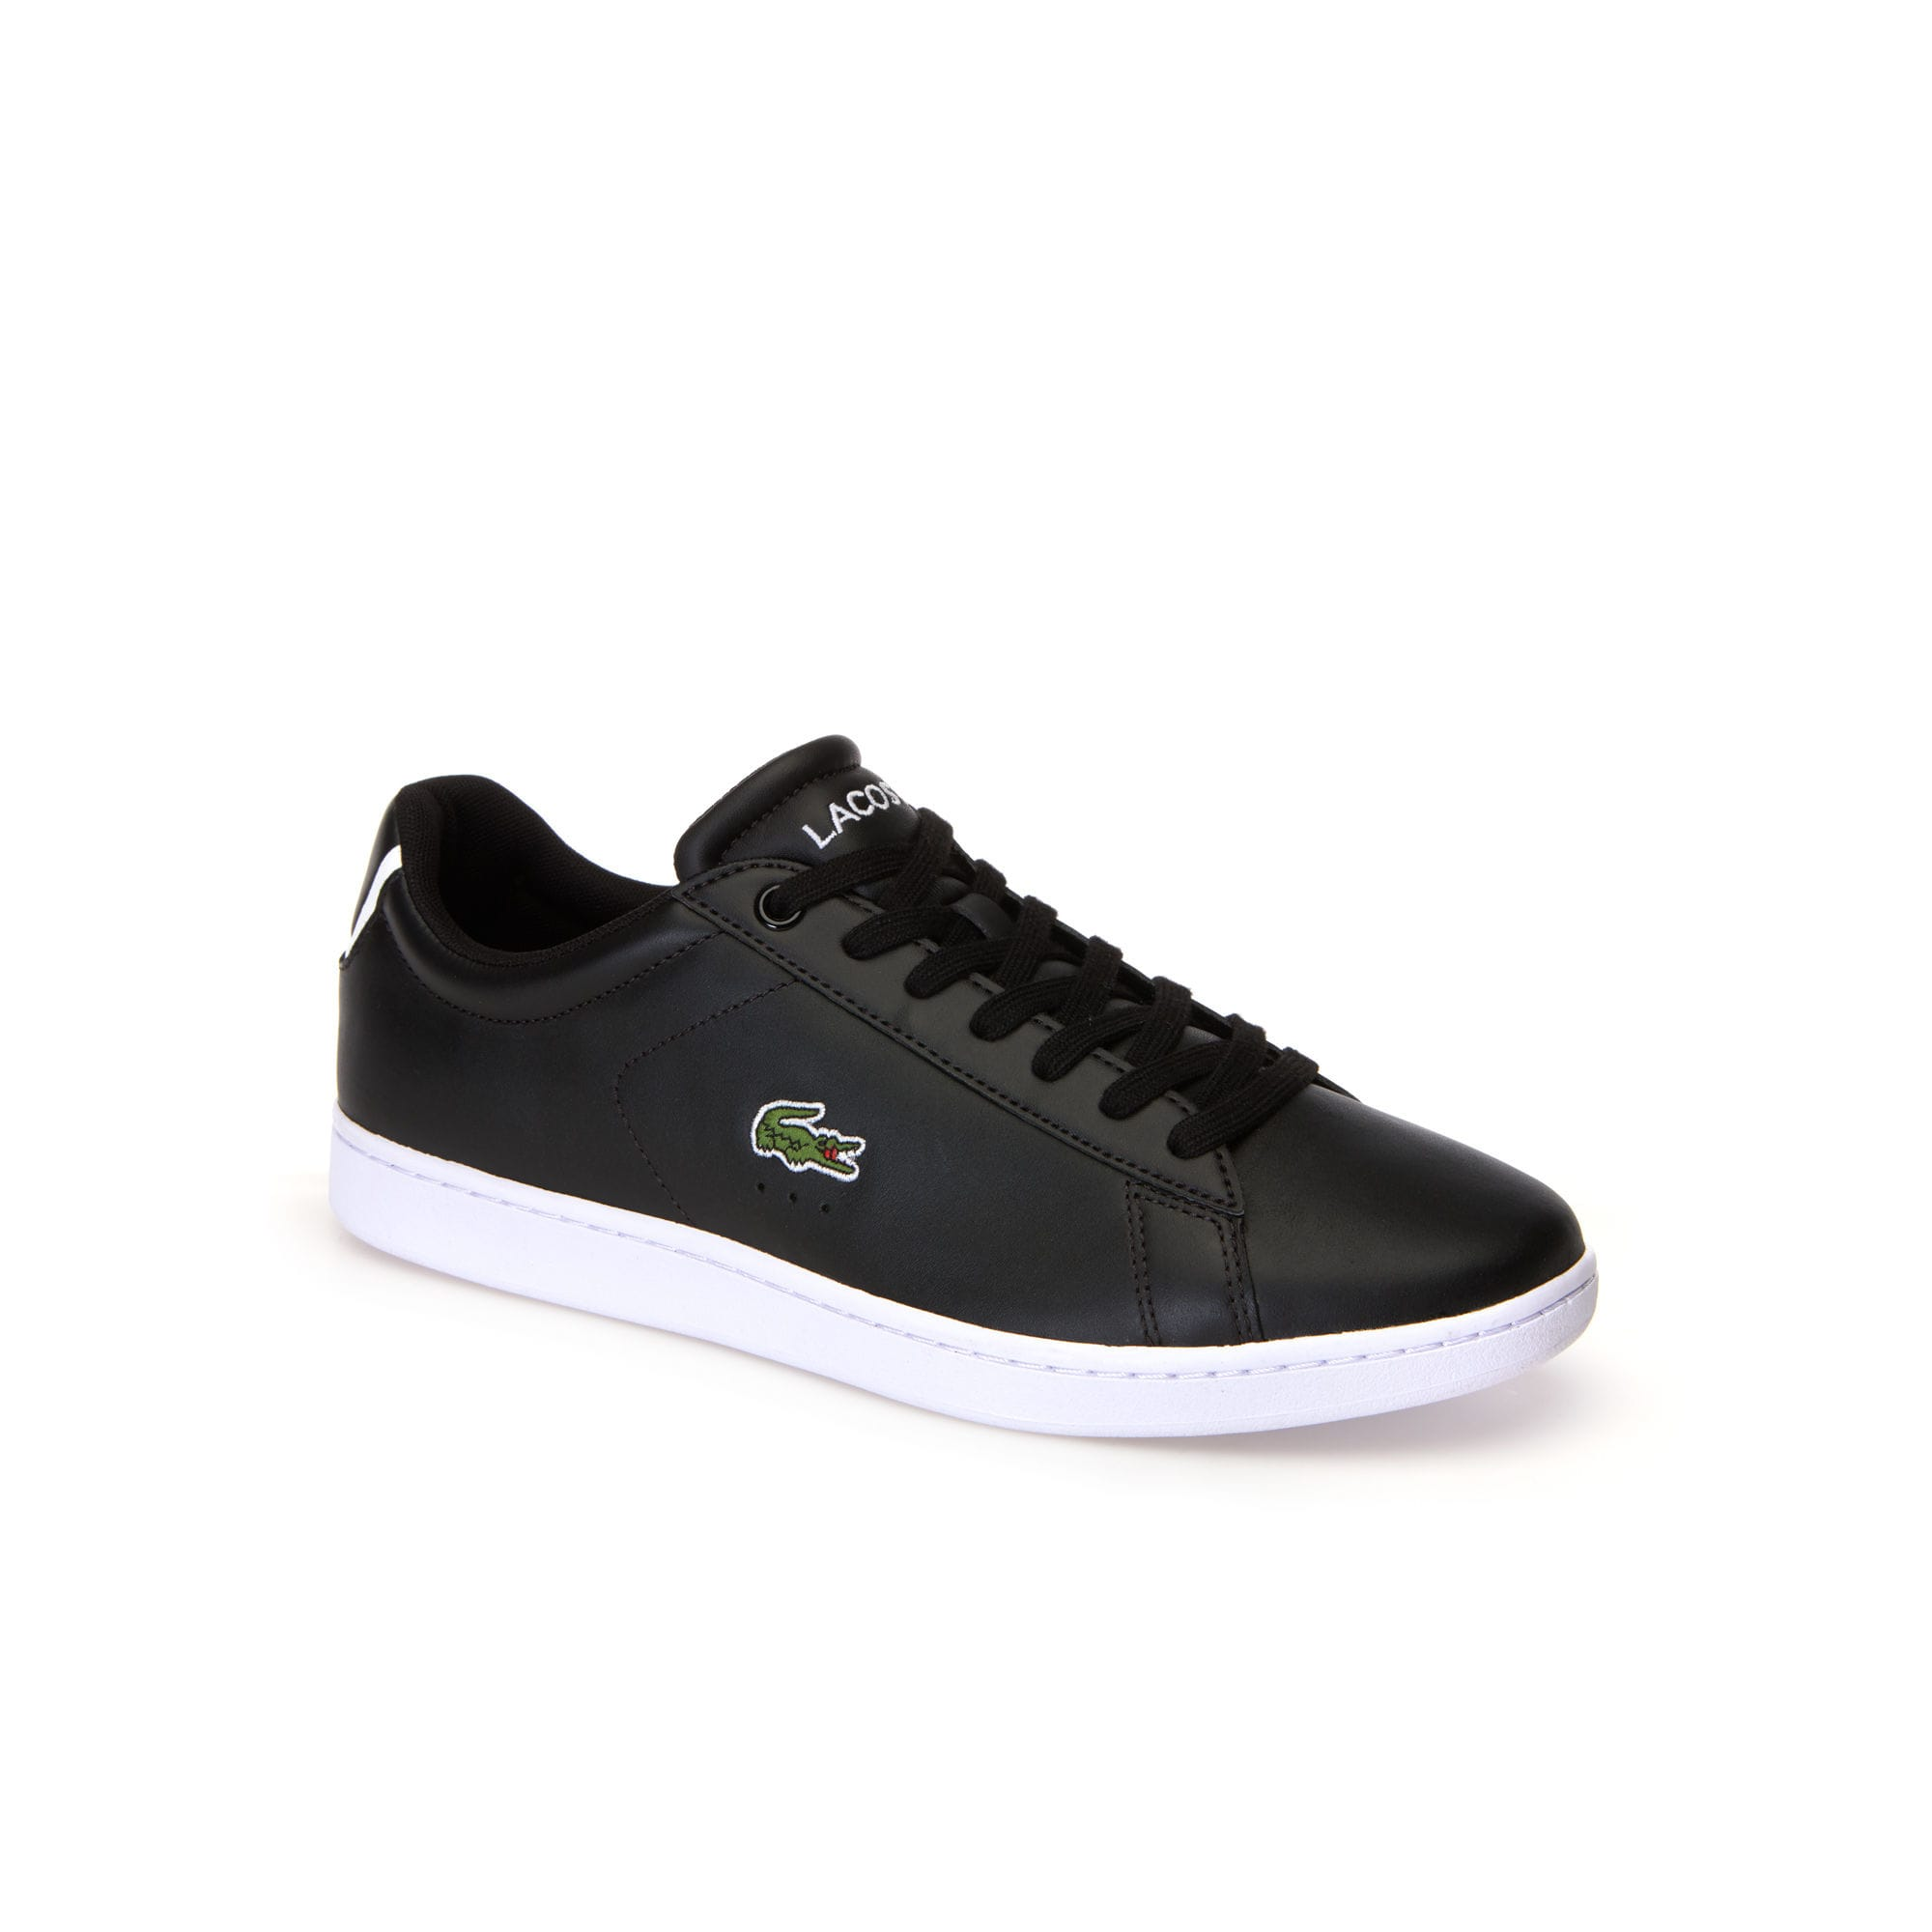 Men's Carnaby Evo BL Leather Sneakers (Black)